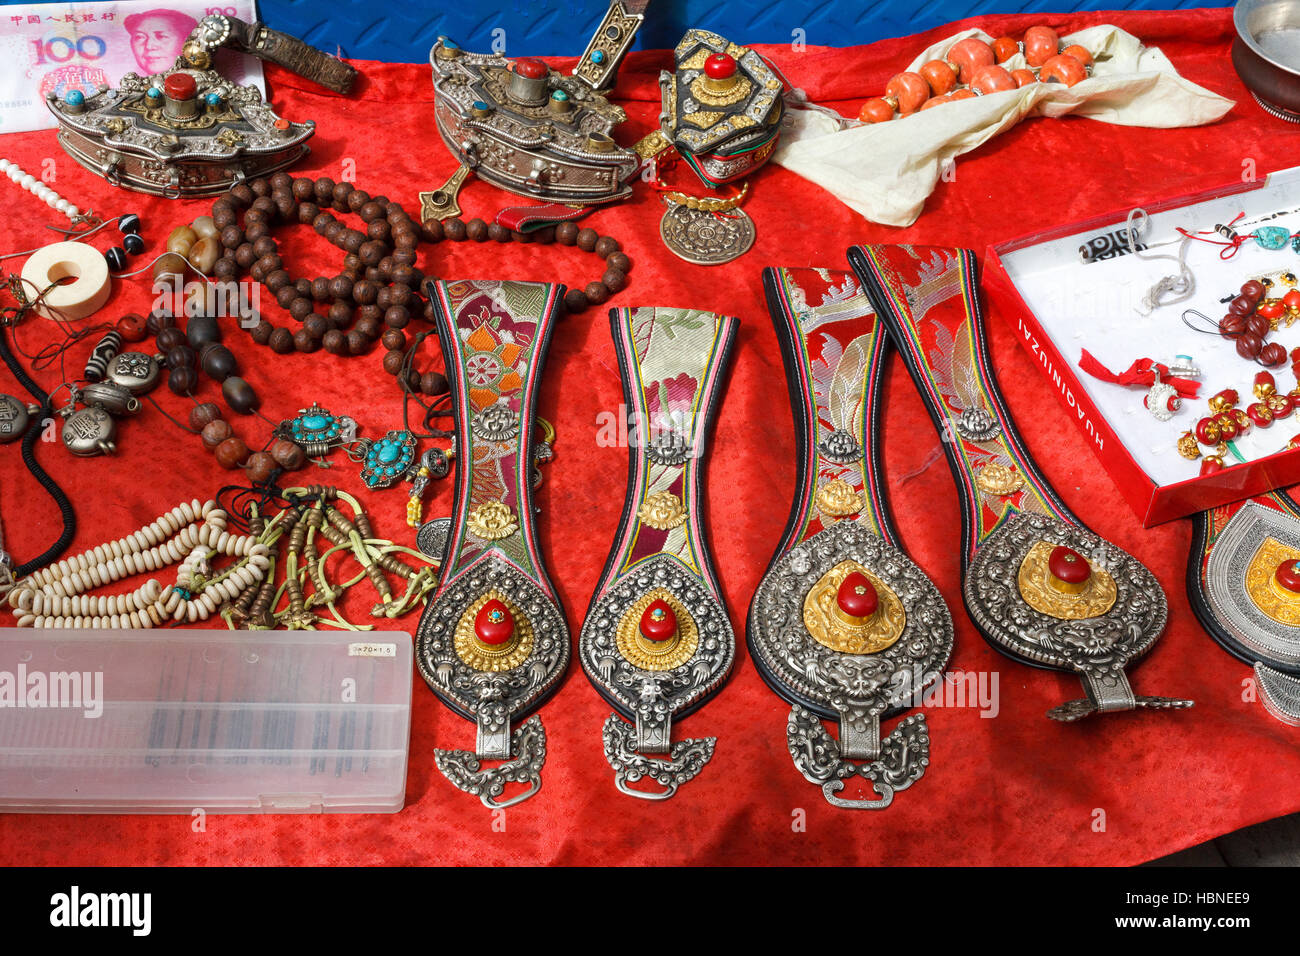 Tibetan accessories sold on the market - Stock Image